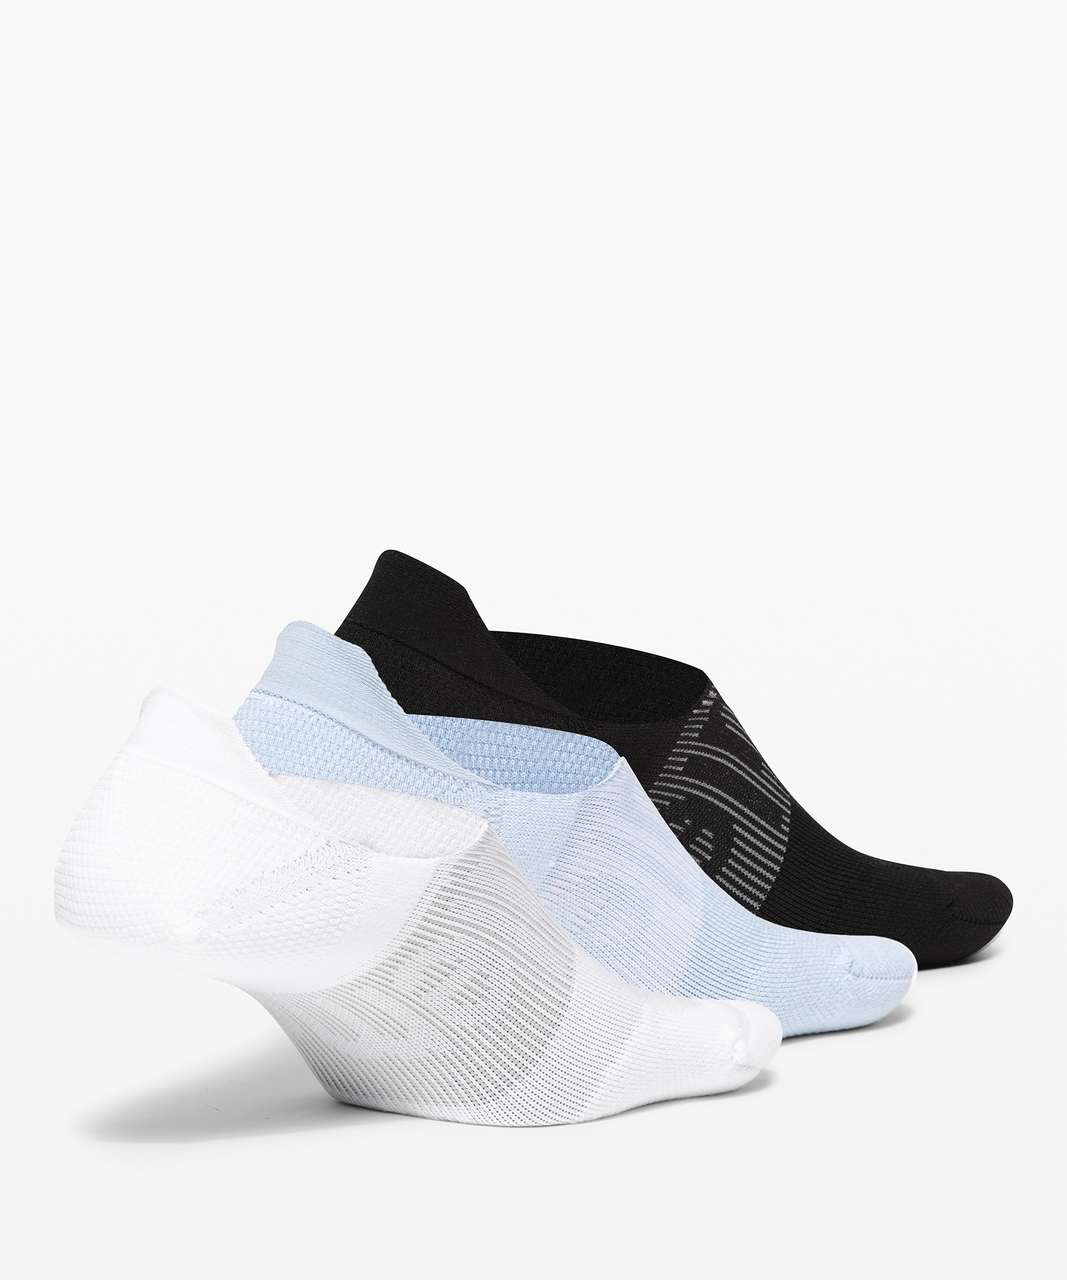 Lululemon Power Stride No-Show Sock with Active Grip *3 Pack - White / Blue Linen / Black